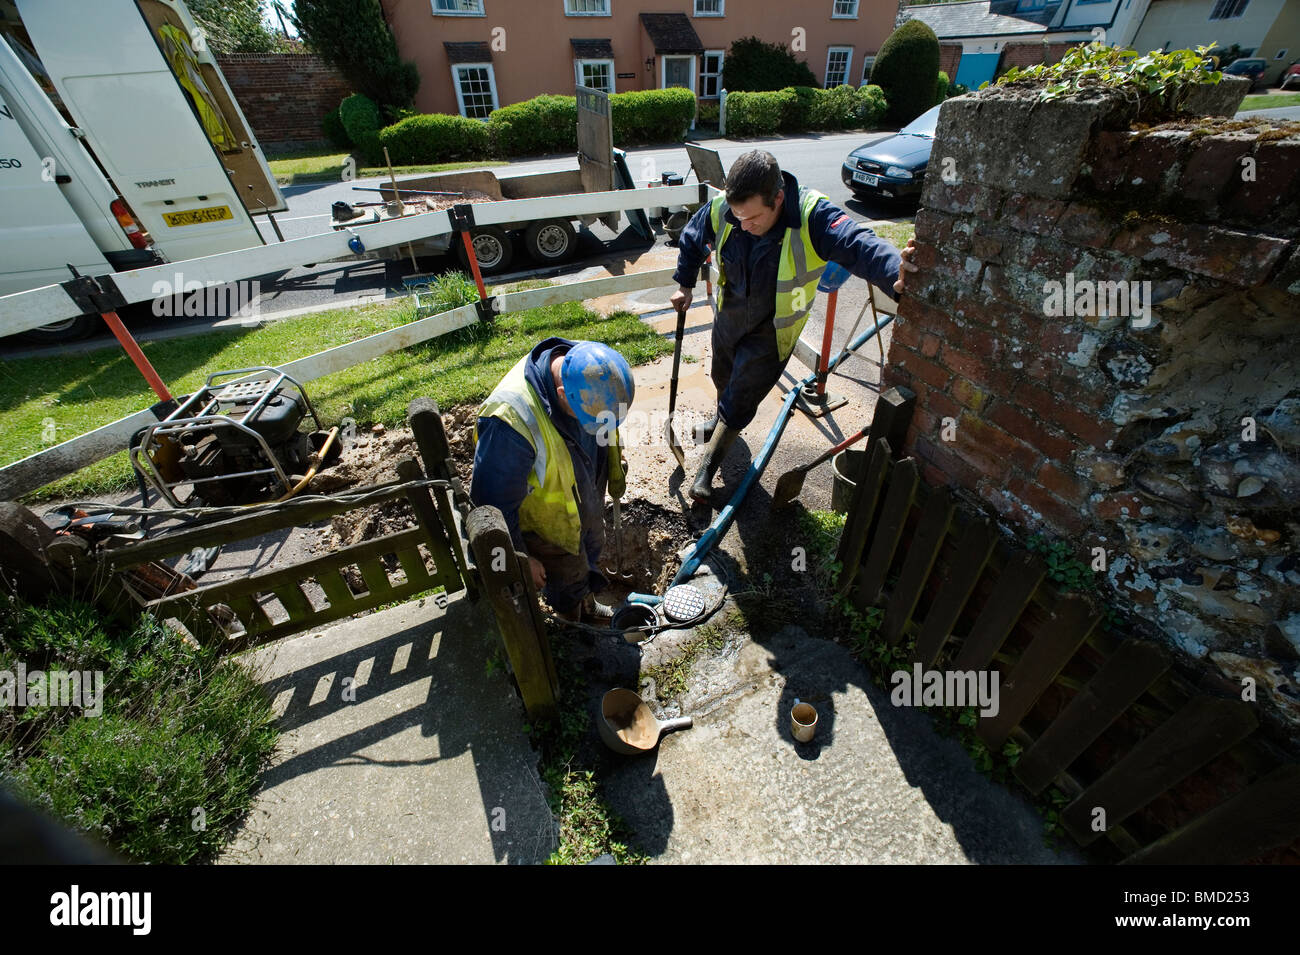 Water leak outside photographers house, Stoke by Clare,Suffolk.Britain,UK. - Stock Image